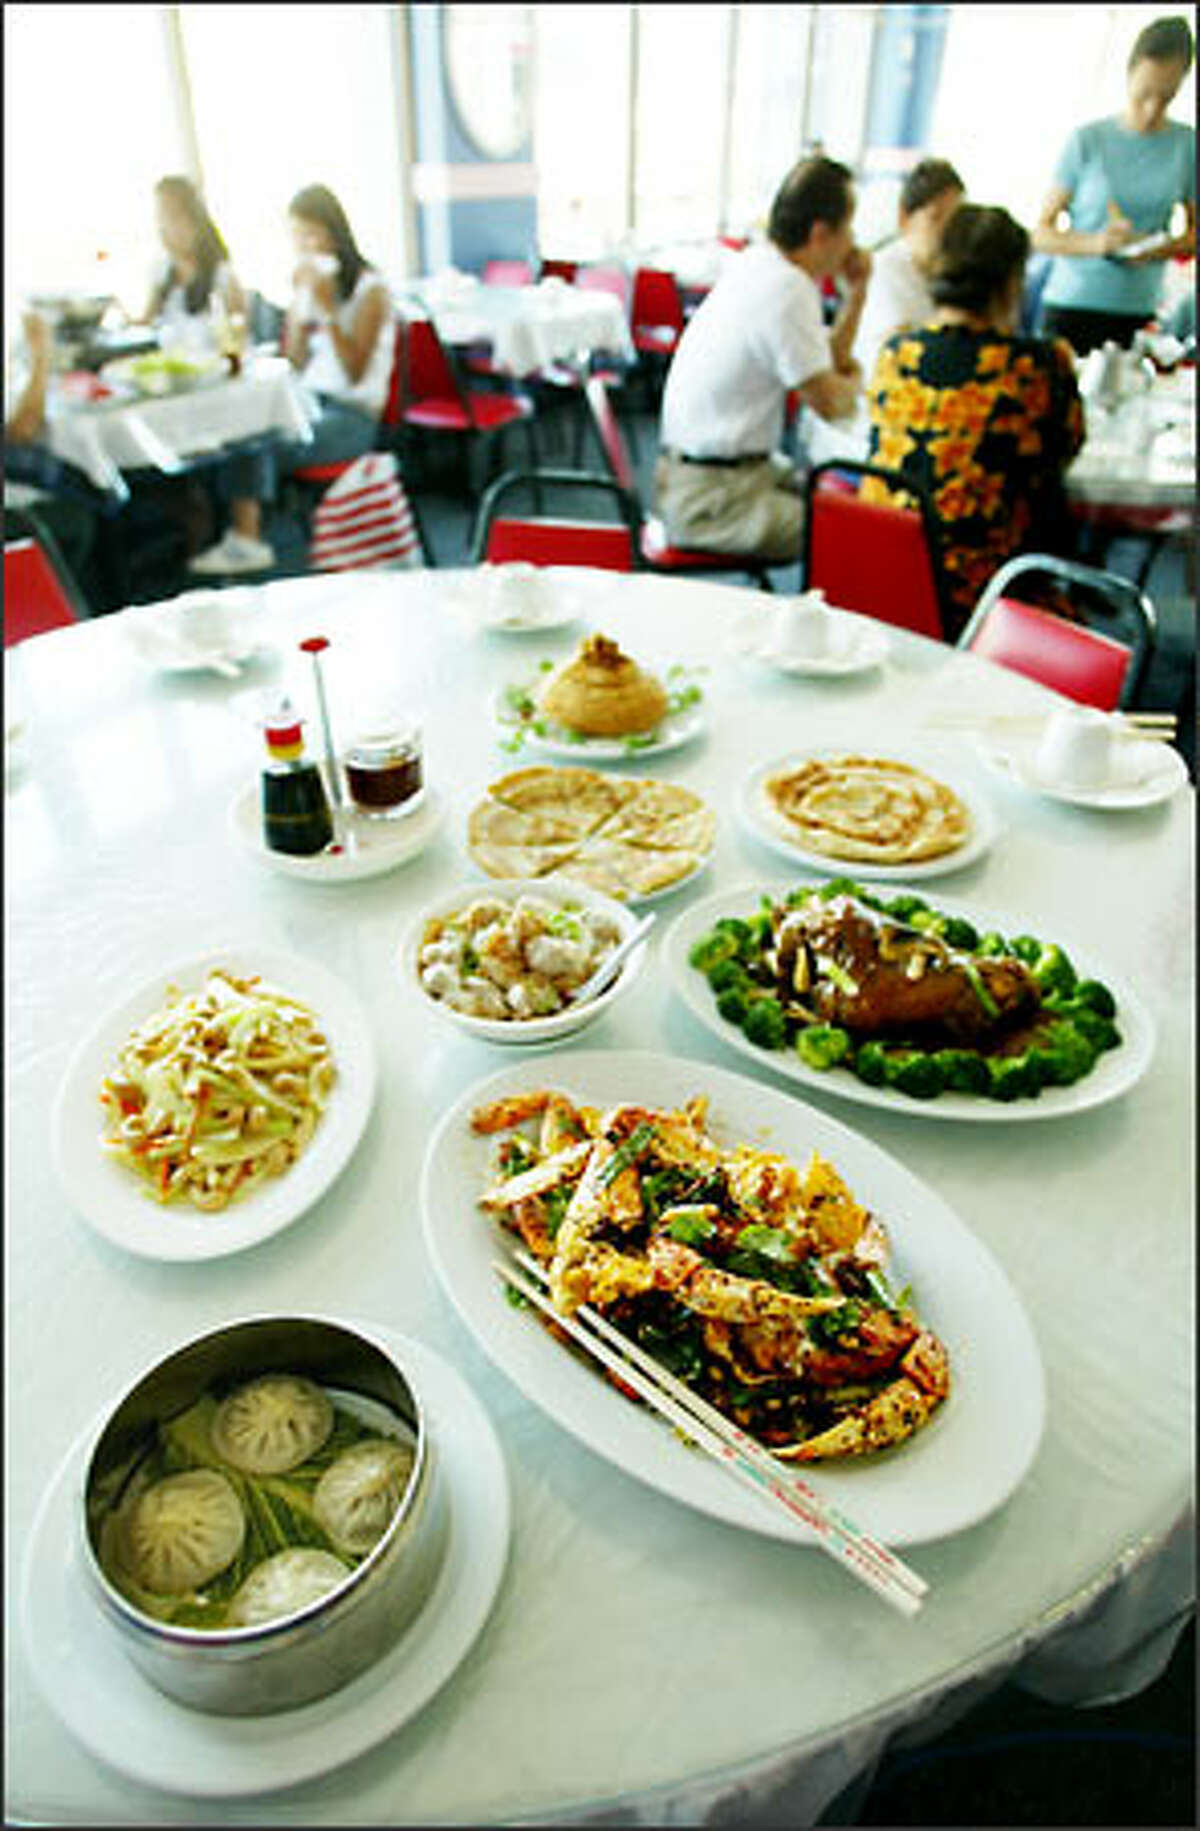 Some of the specialties of Seven Stars Pepper Szechuan Restaurant include, at left foreground, steamed pork buns and Szechuan crab.